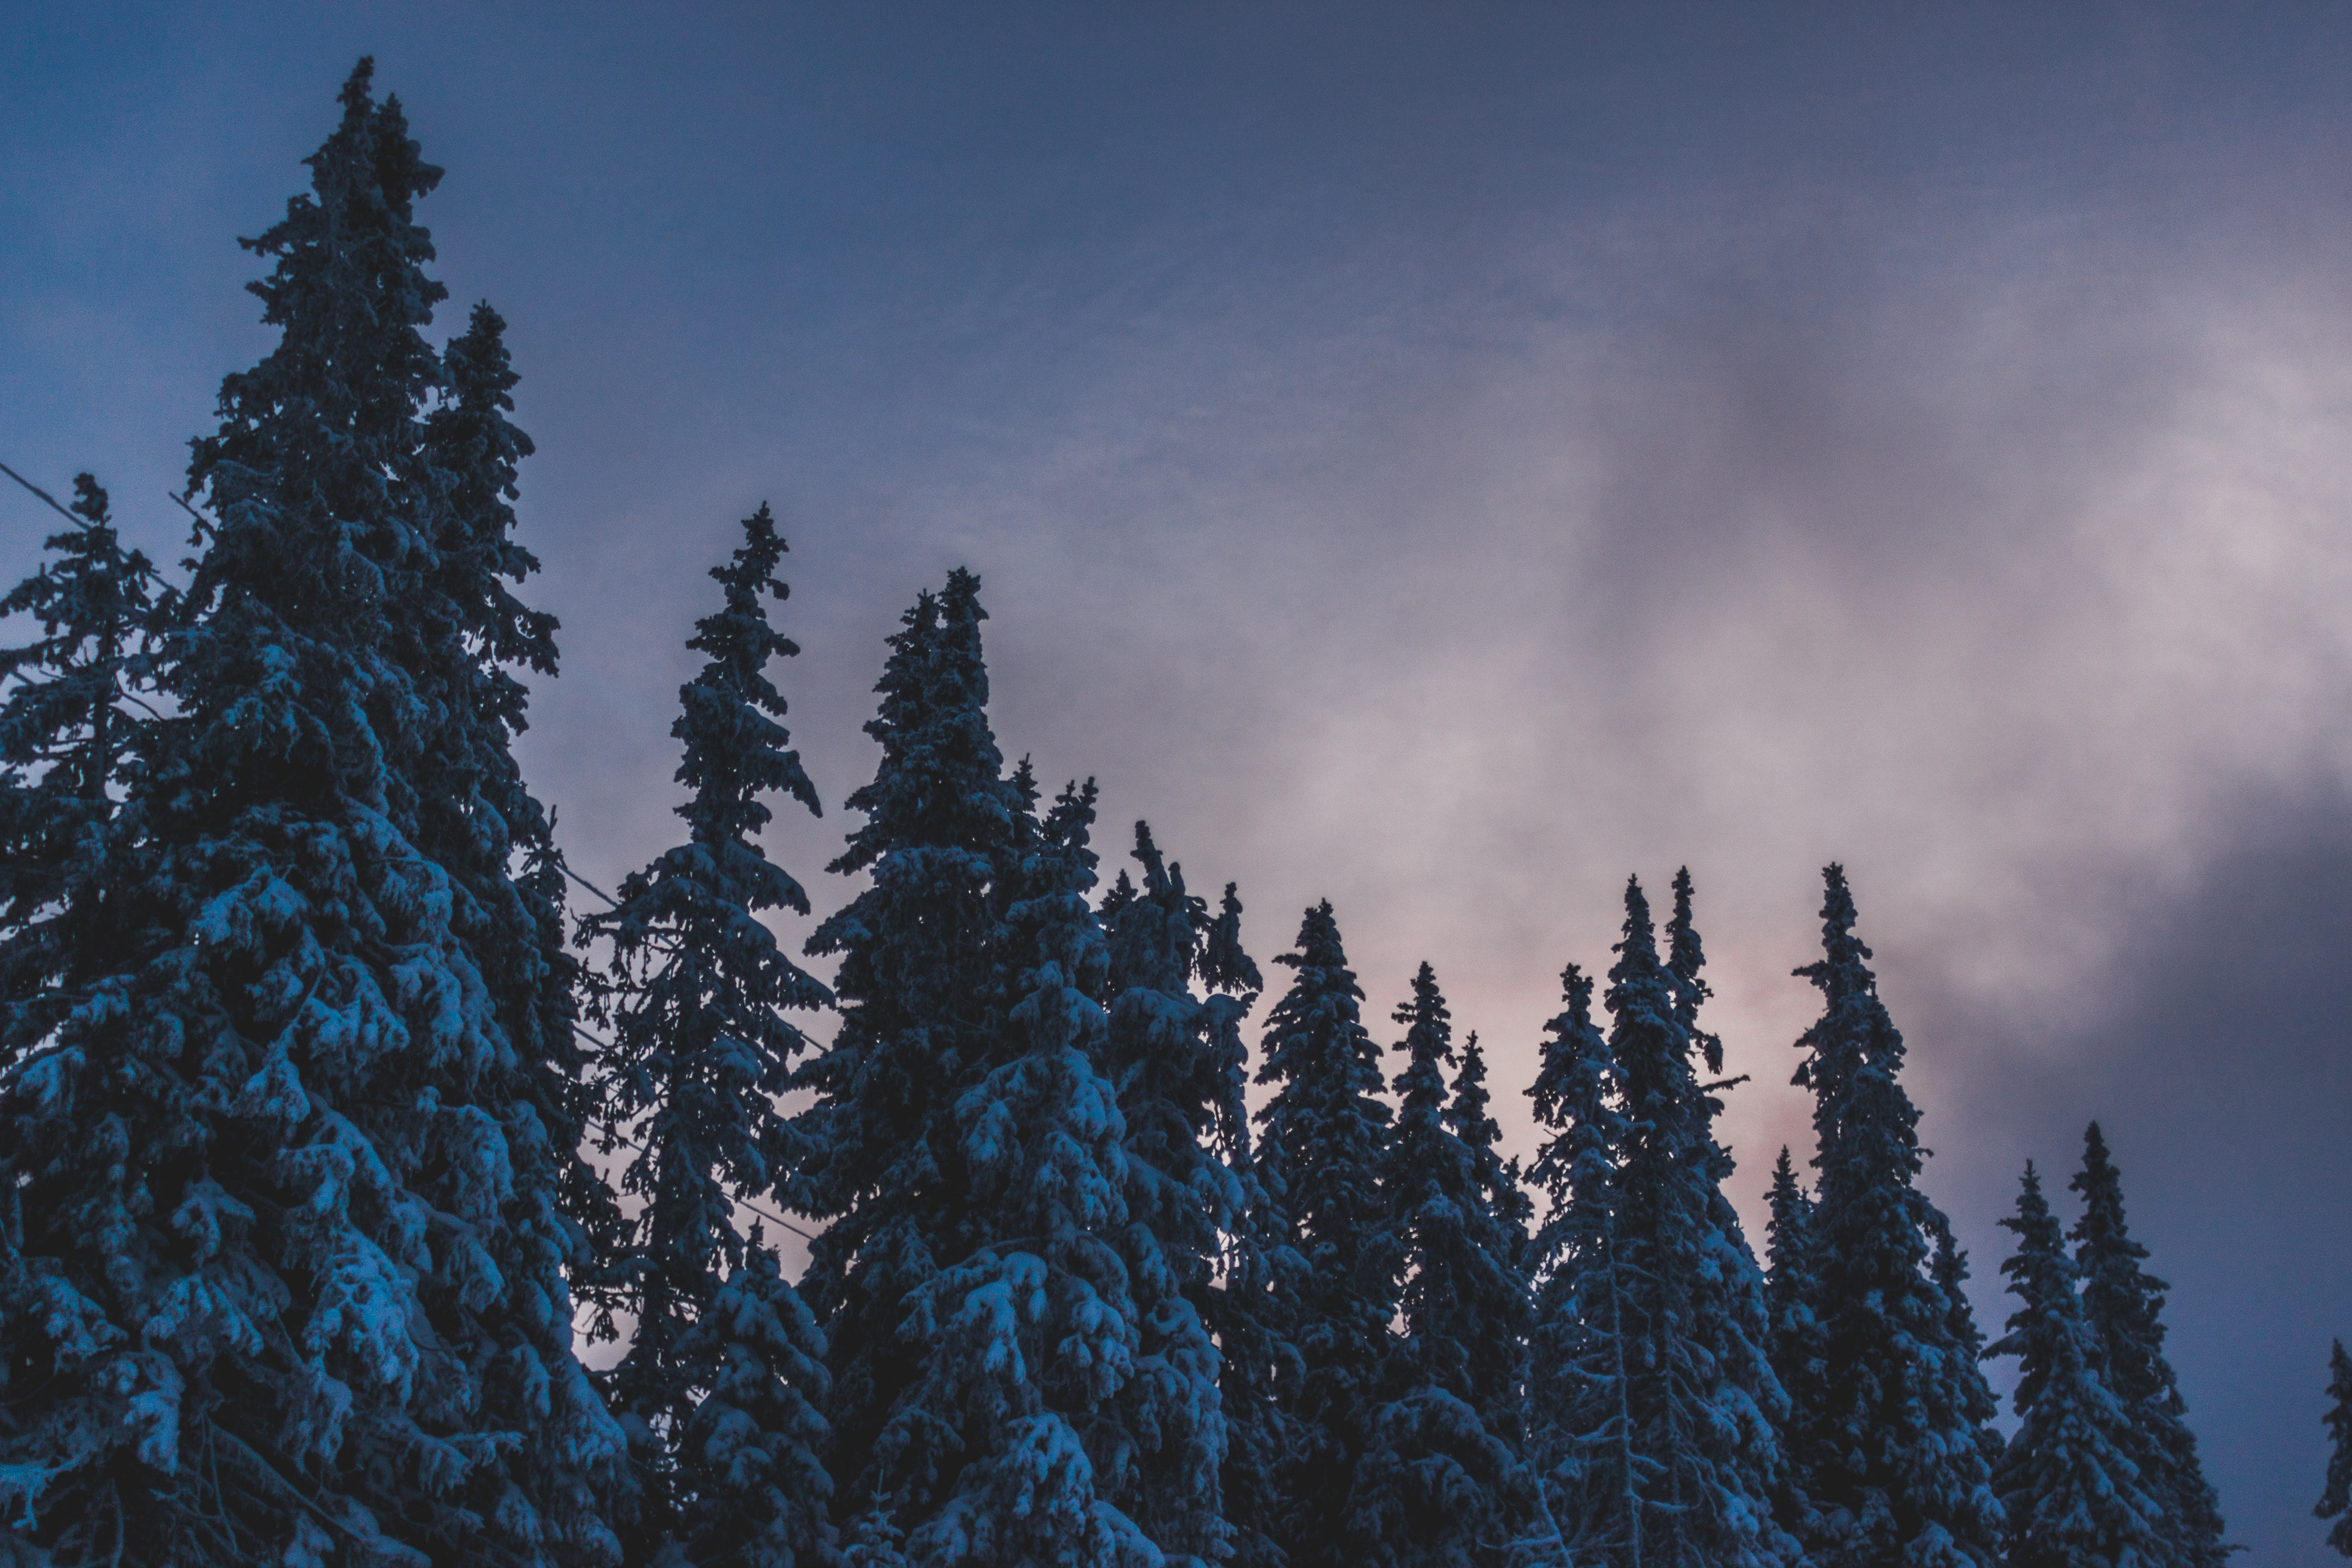 photography of trees coated with snow